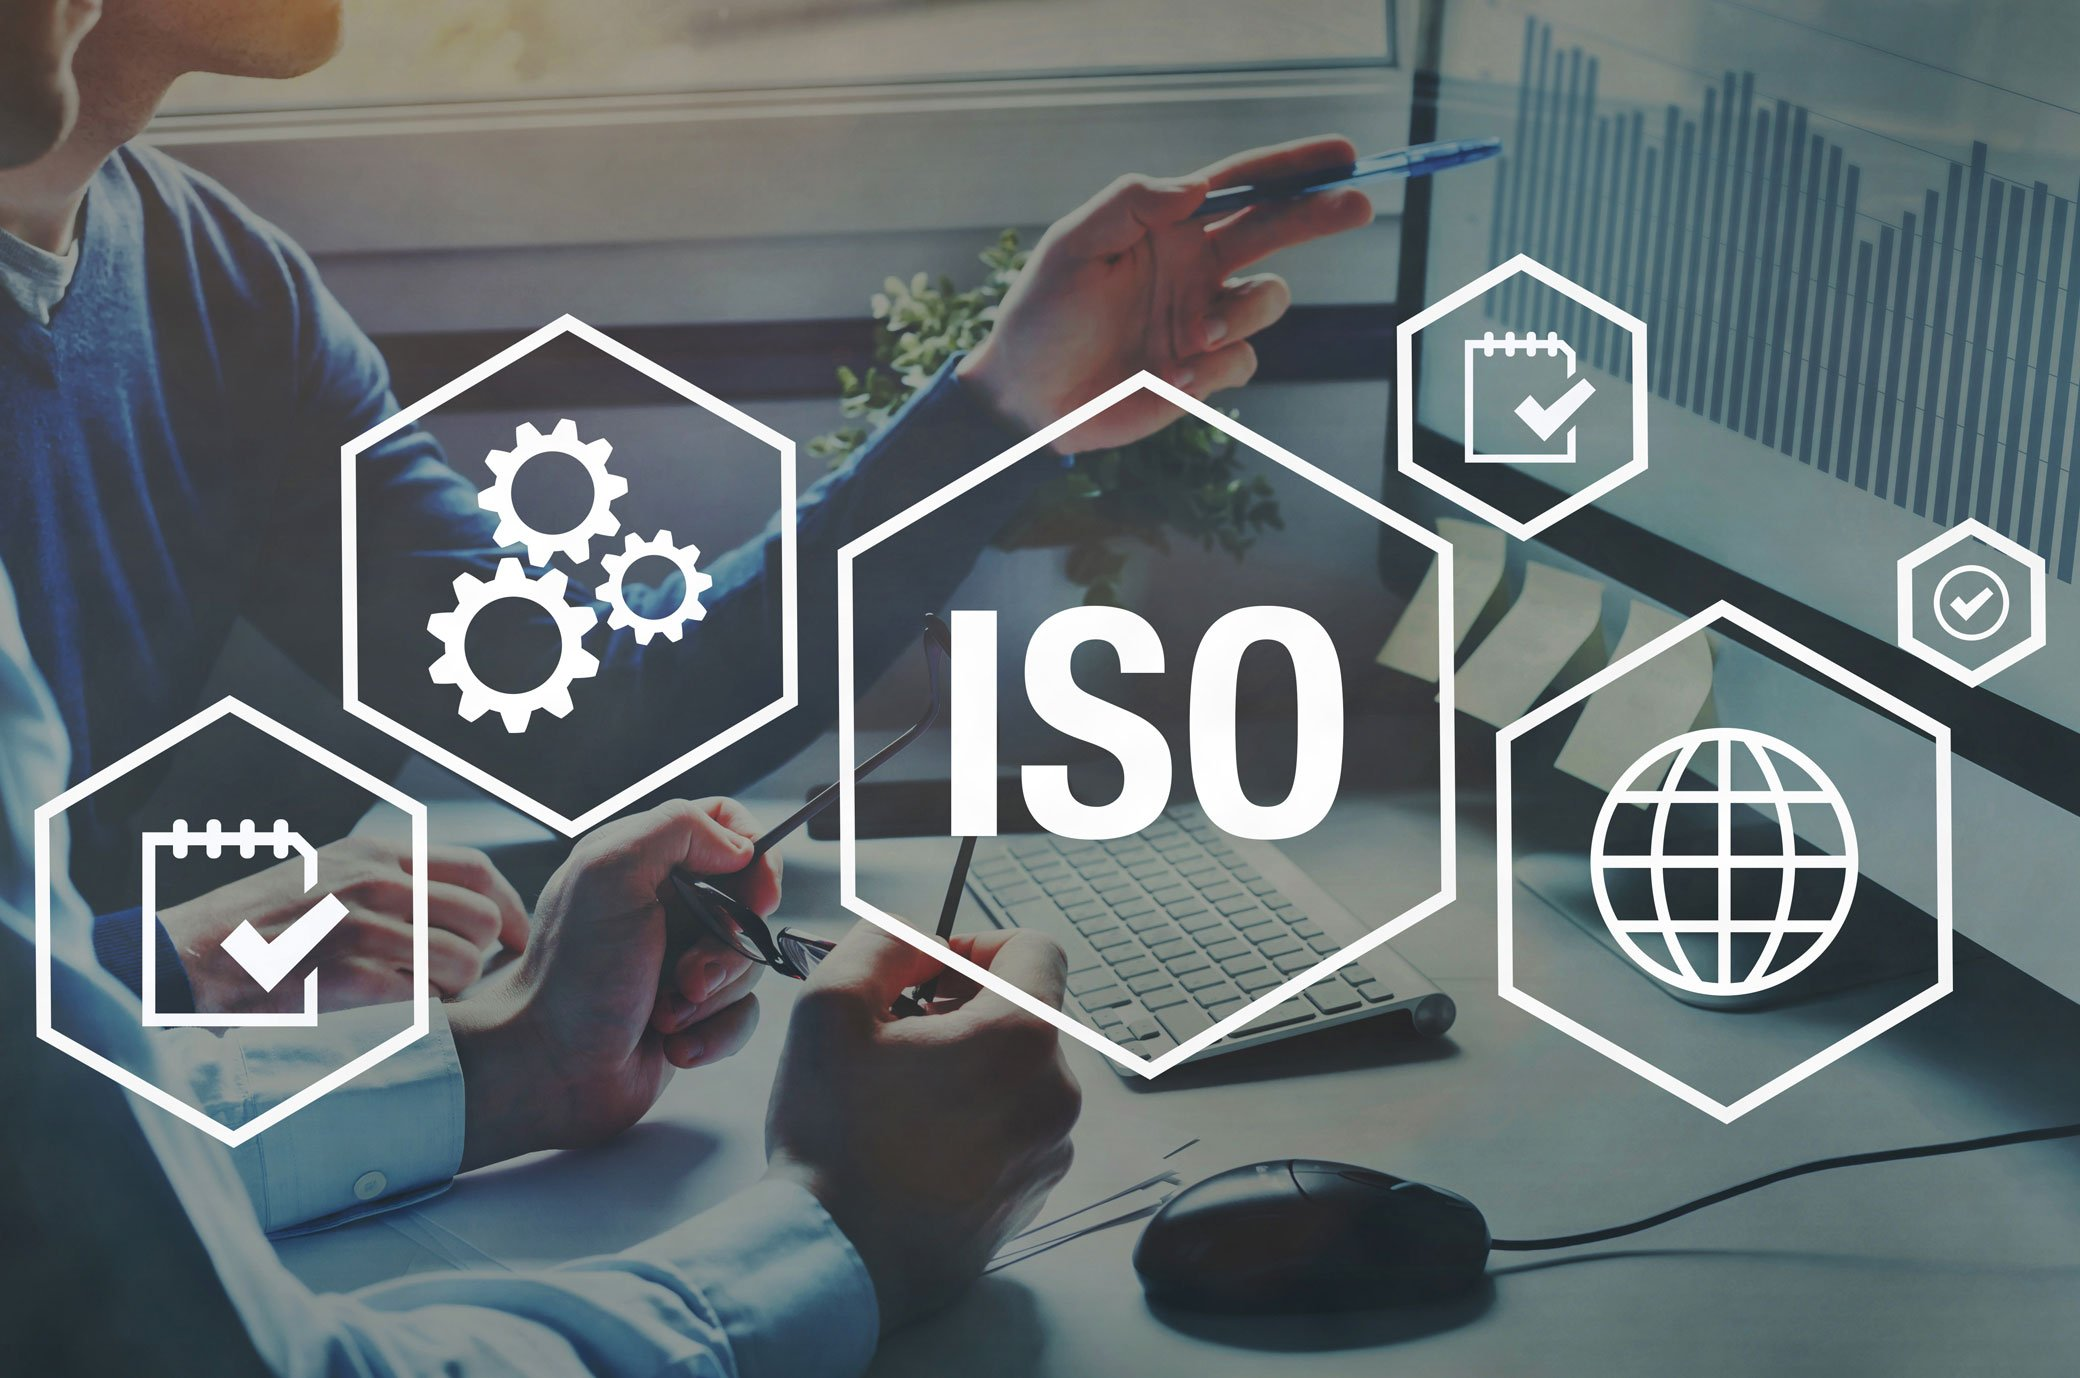 EIP is ISO 27001 Certified